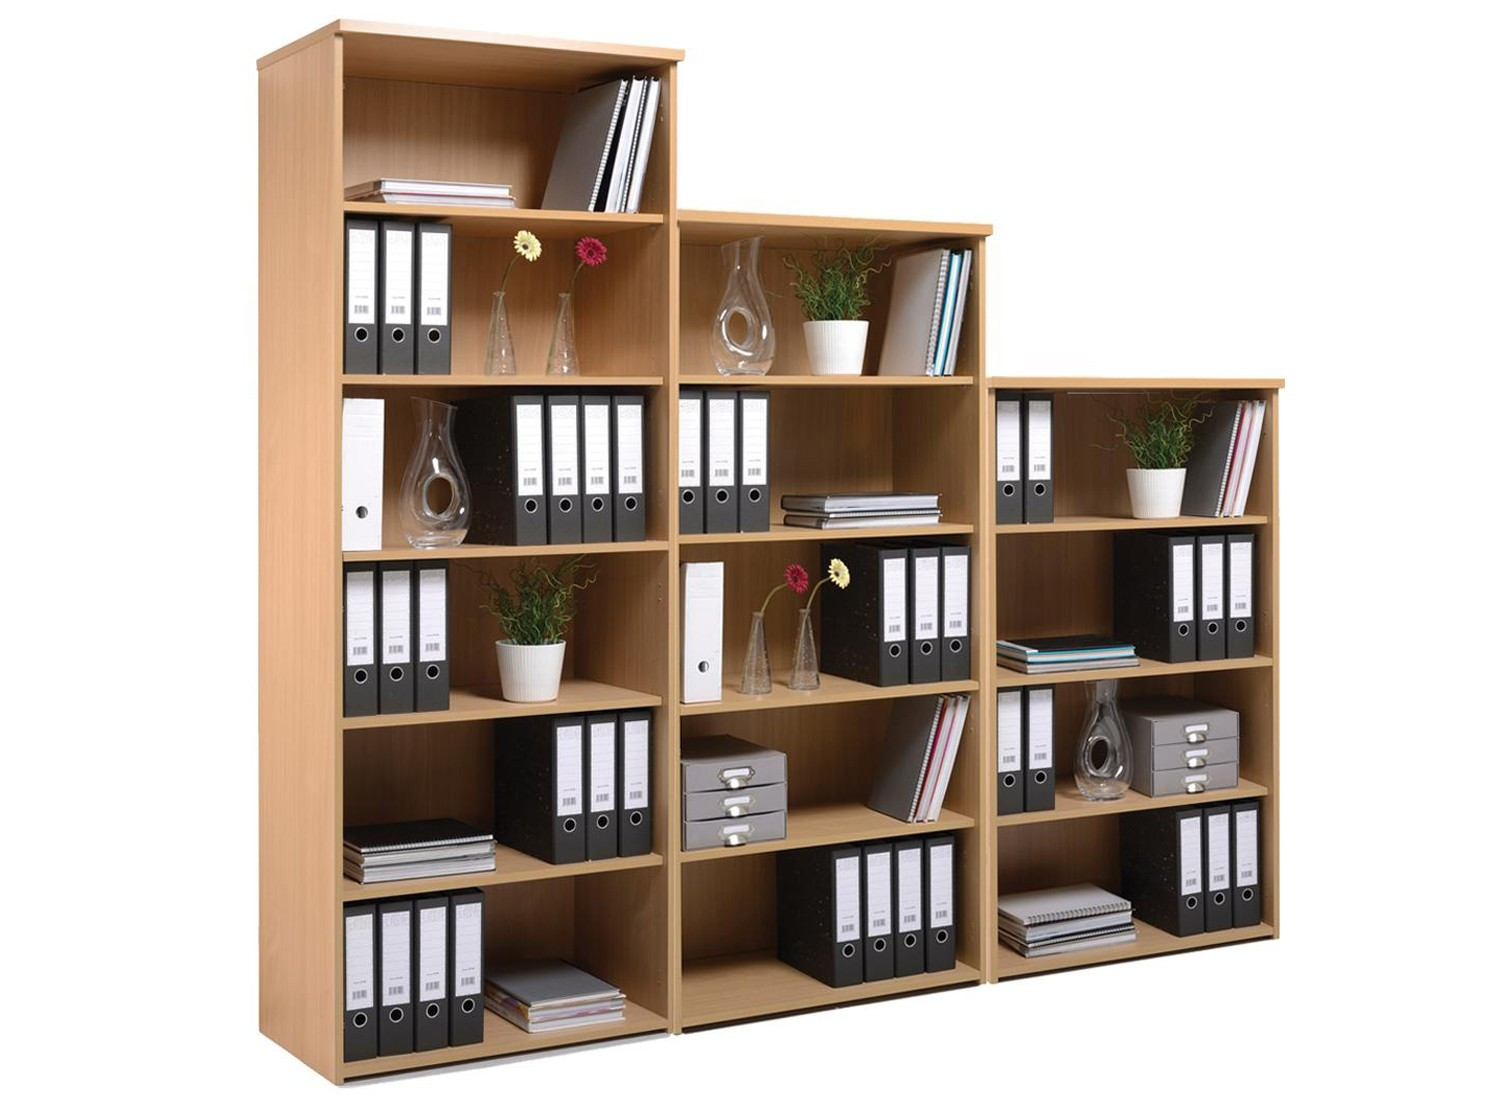 Next-Day Bookcases